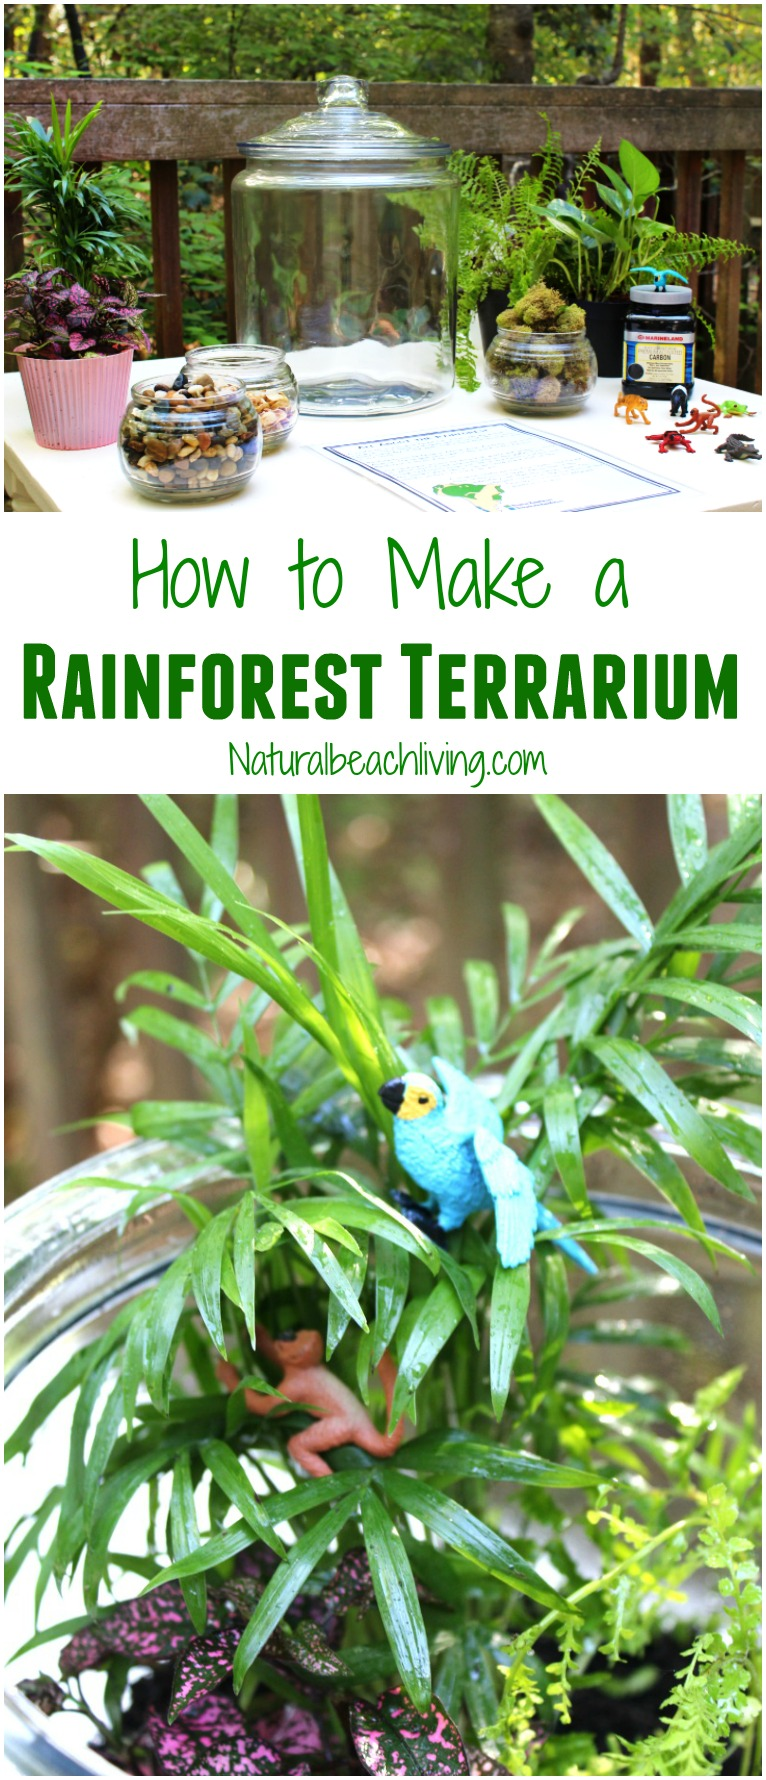 How To Make The Best Rainforest Terrarium With Kids, Learn About The  Rainforest Animal Habitat